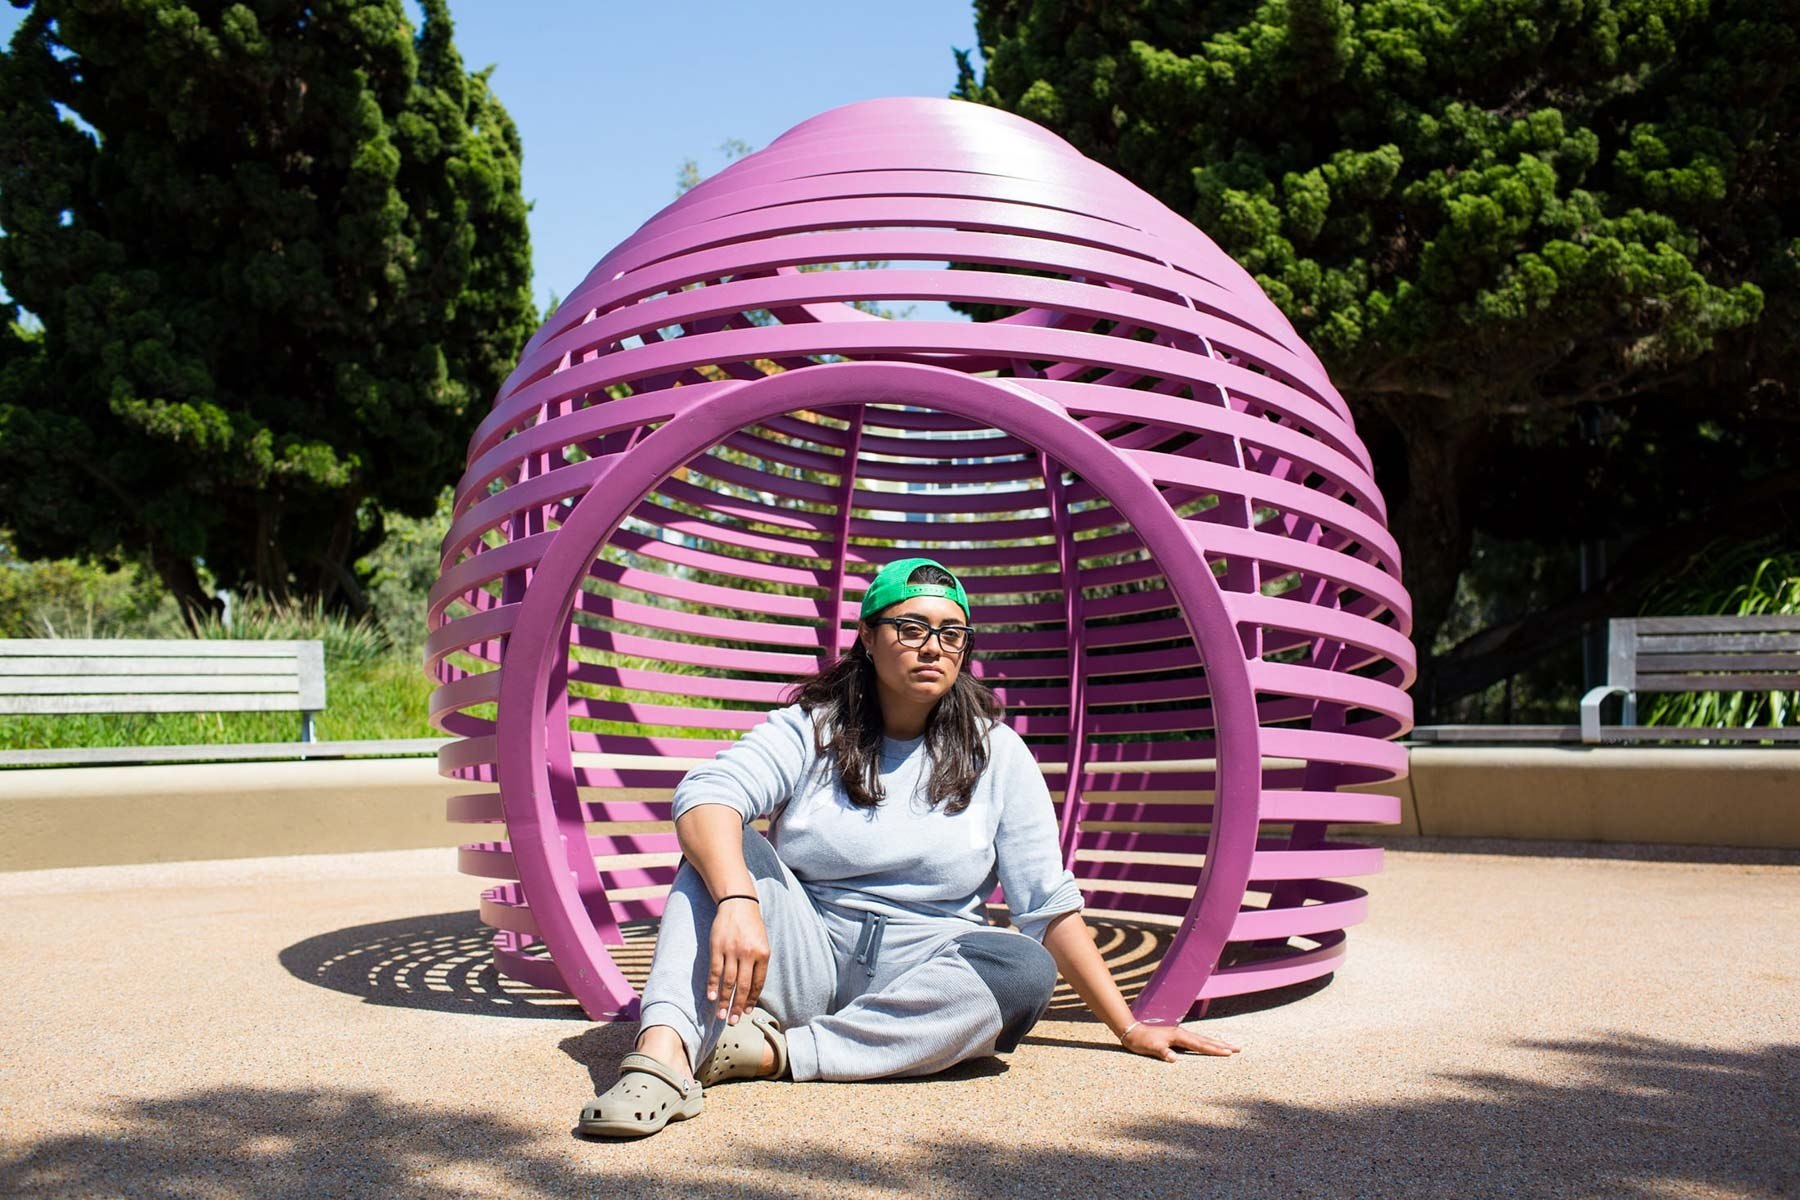 Michelle Ducoing, 24, inside the playground structure where she slept on her first night of homelessness in Santa Monica, California. 'Homeless women on their first night on the streets'  for the Guardian